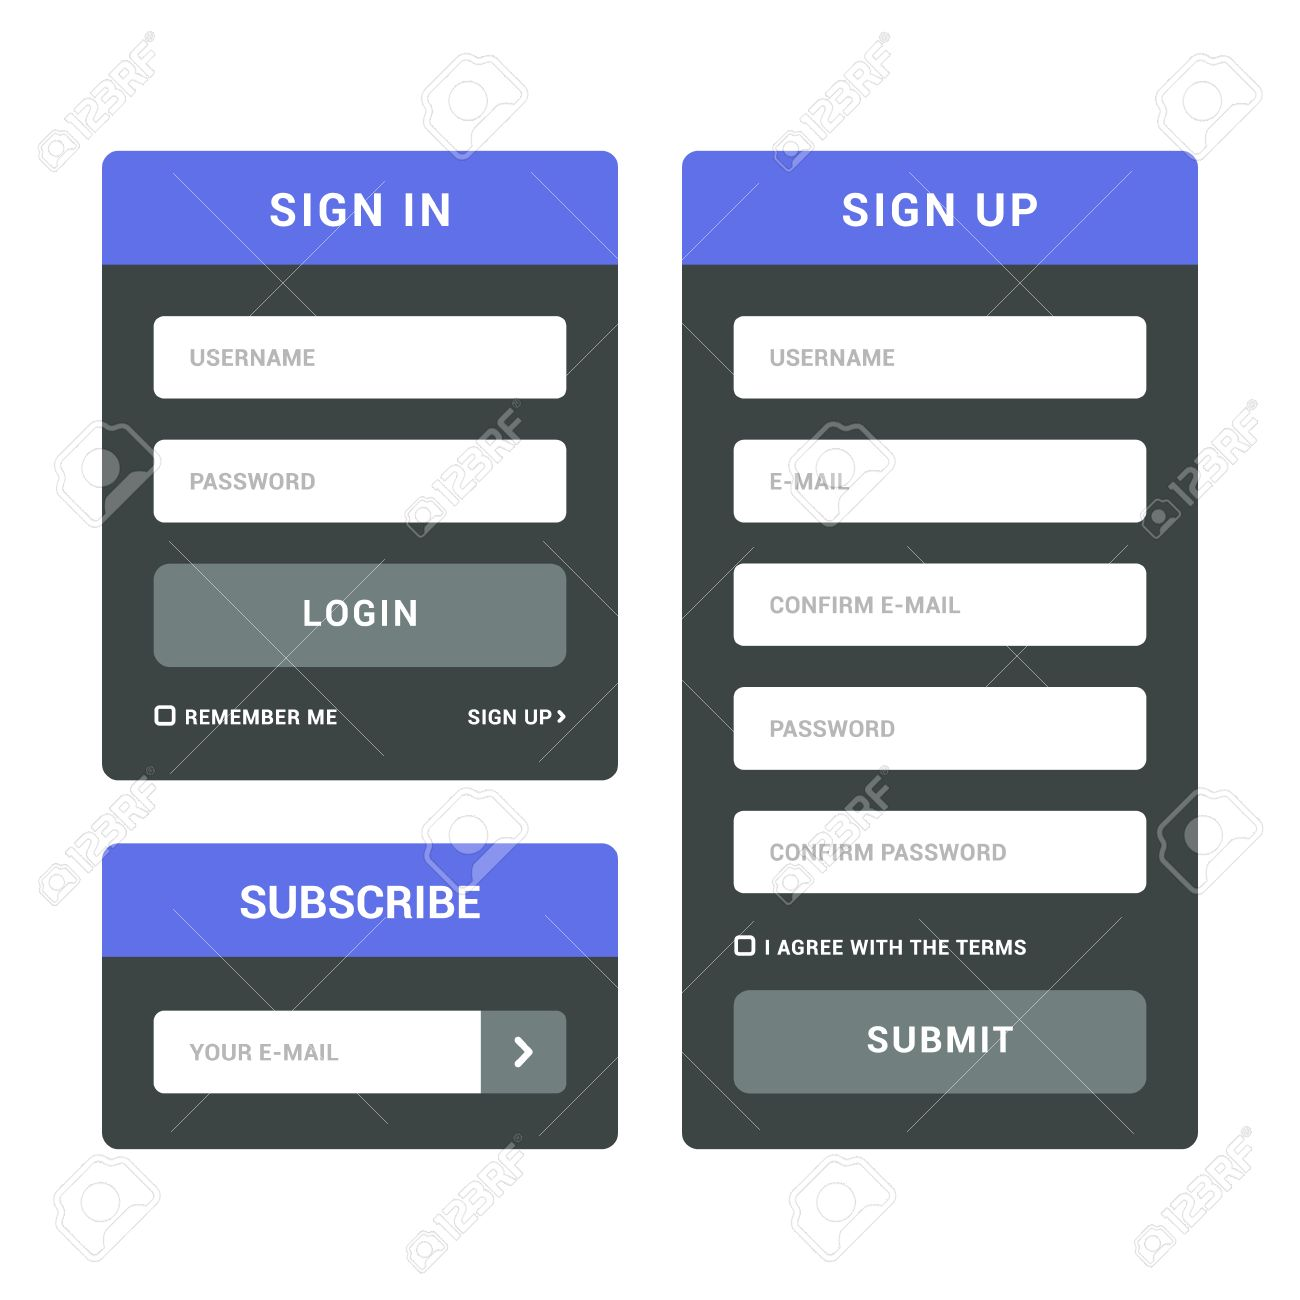 Login And Registration Forms Flat Sign In And Sign Up Templates – Sign Up Templates